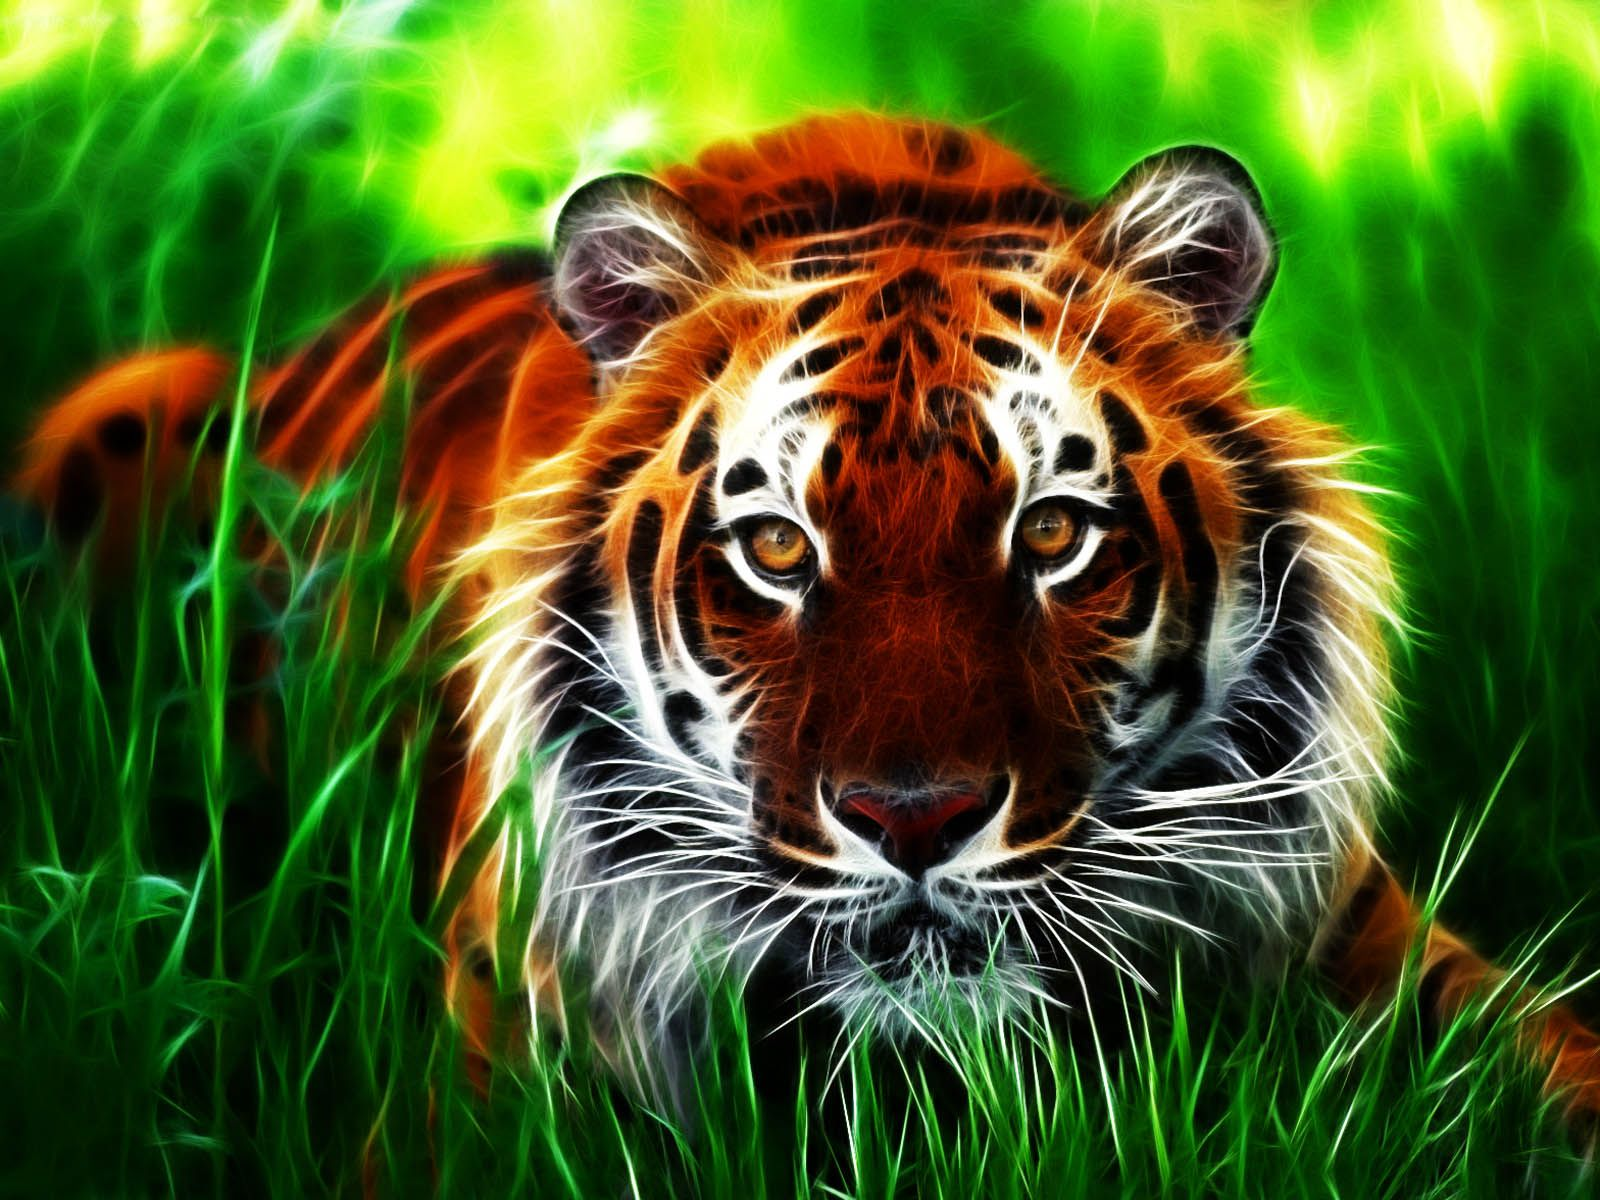 Wallpapers Tiger 3d Wallpapers Tiger Wallpaper Tiger Pictures Tiger Images